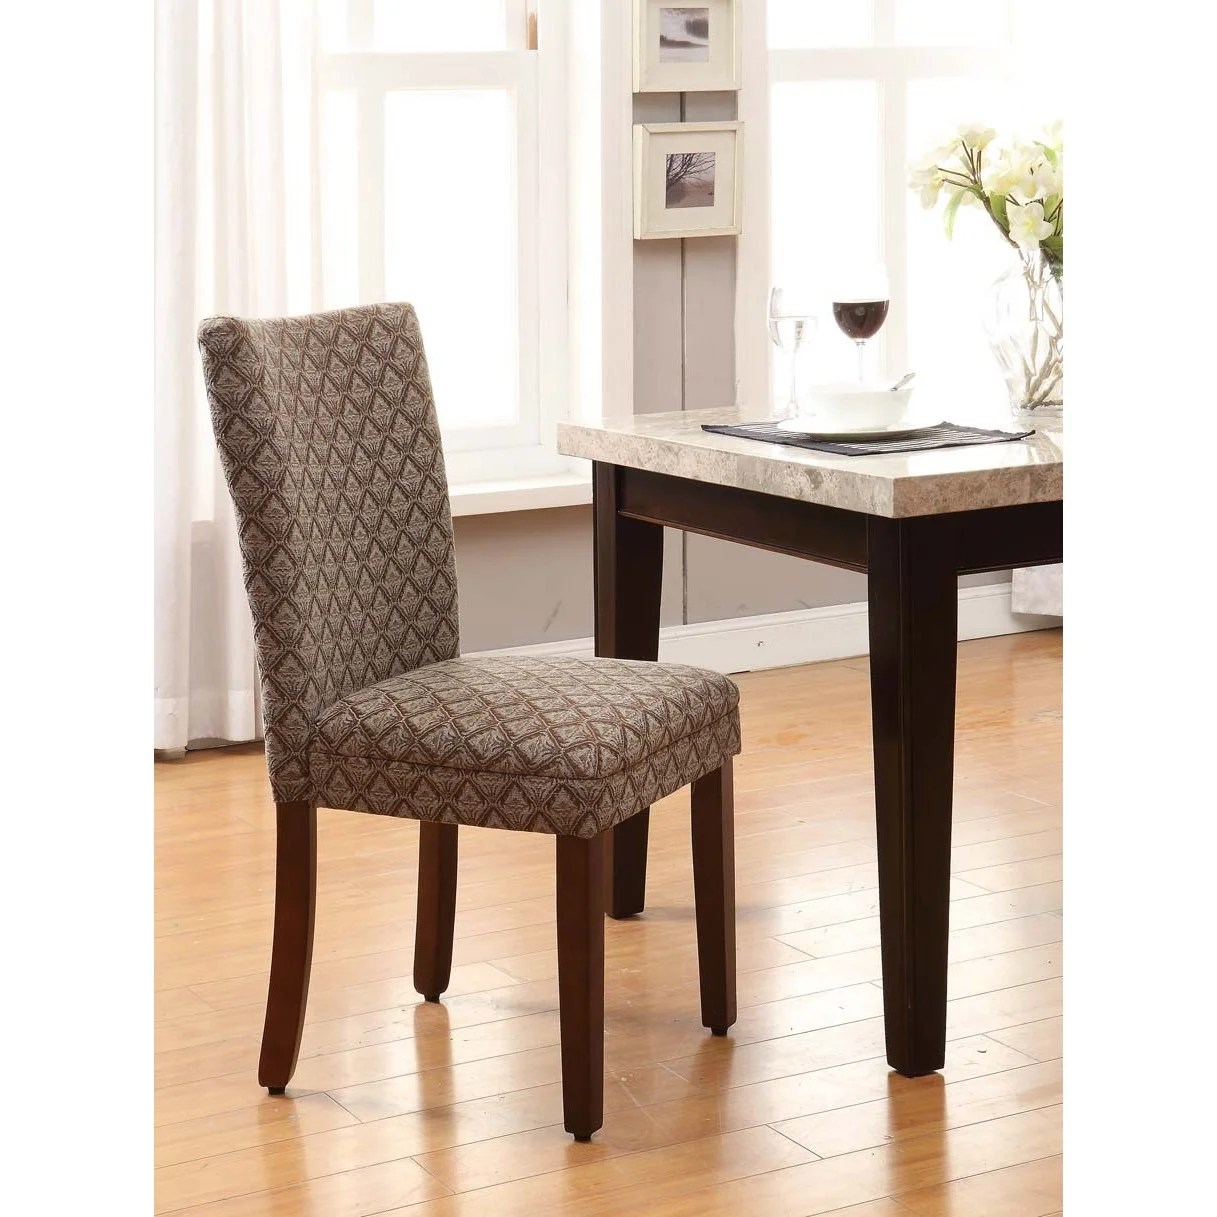 Damask Chair Copper Grove Quince Blue Chocolate Damask Diamond Fabric Dining Chair